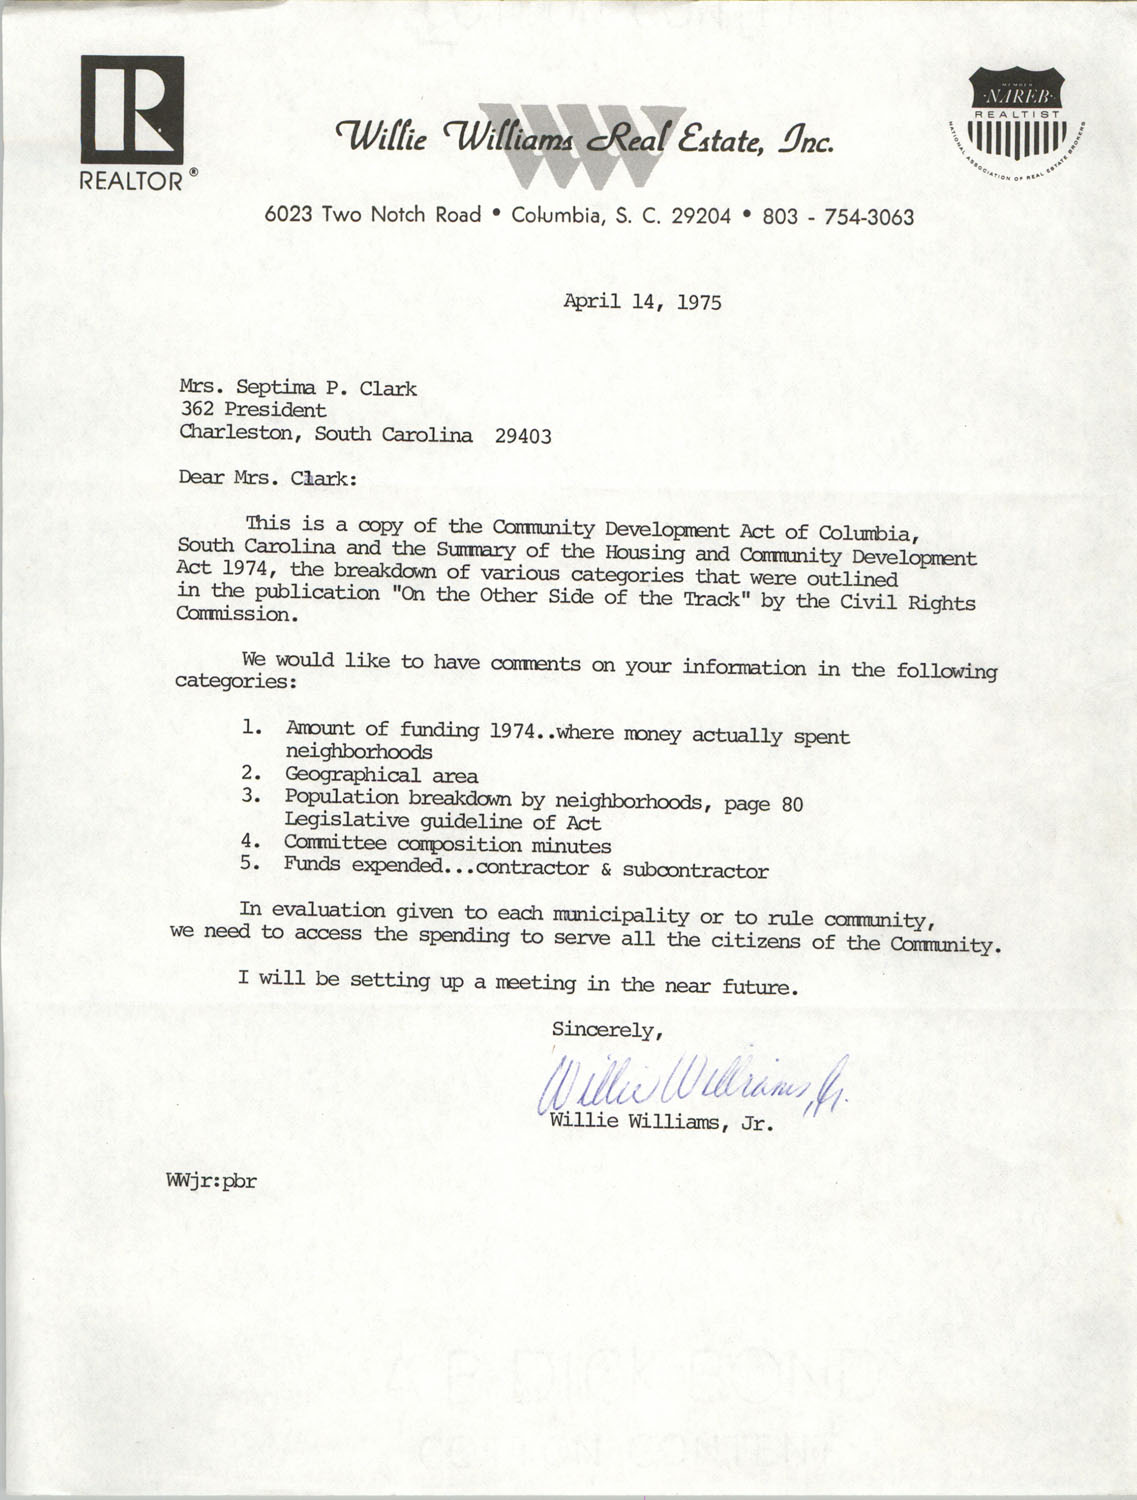 Letter from Willie Williams, Jr. to Septima P. Clark, April 14, 1975